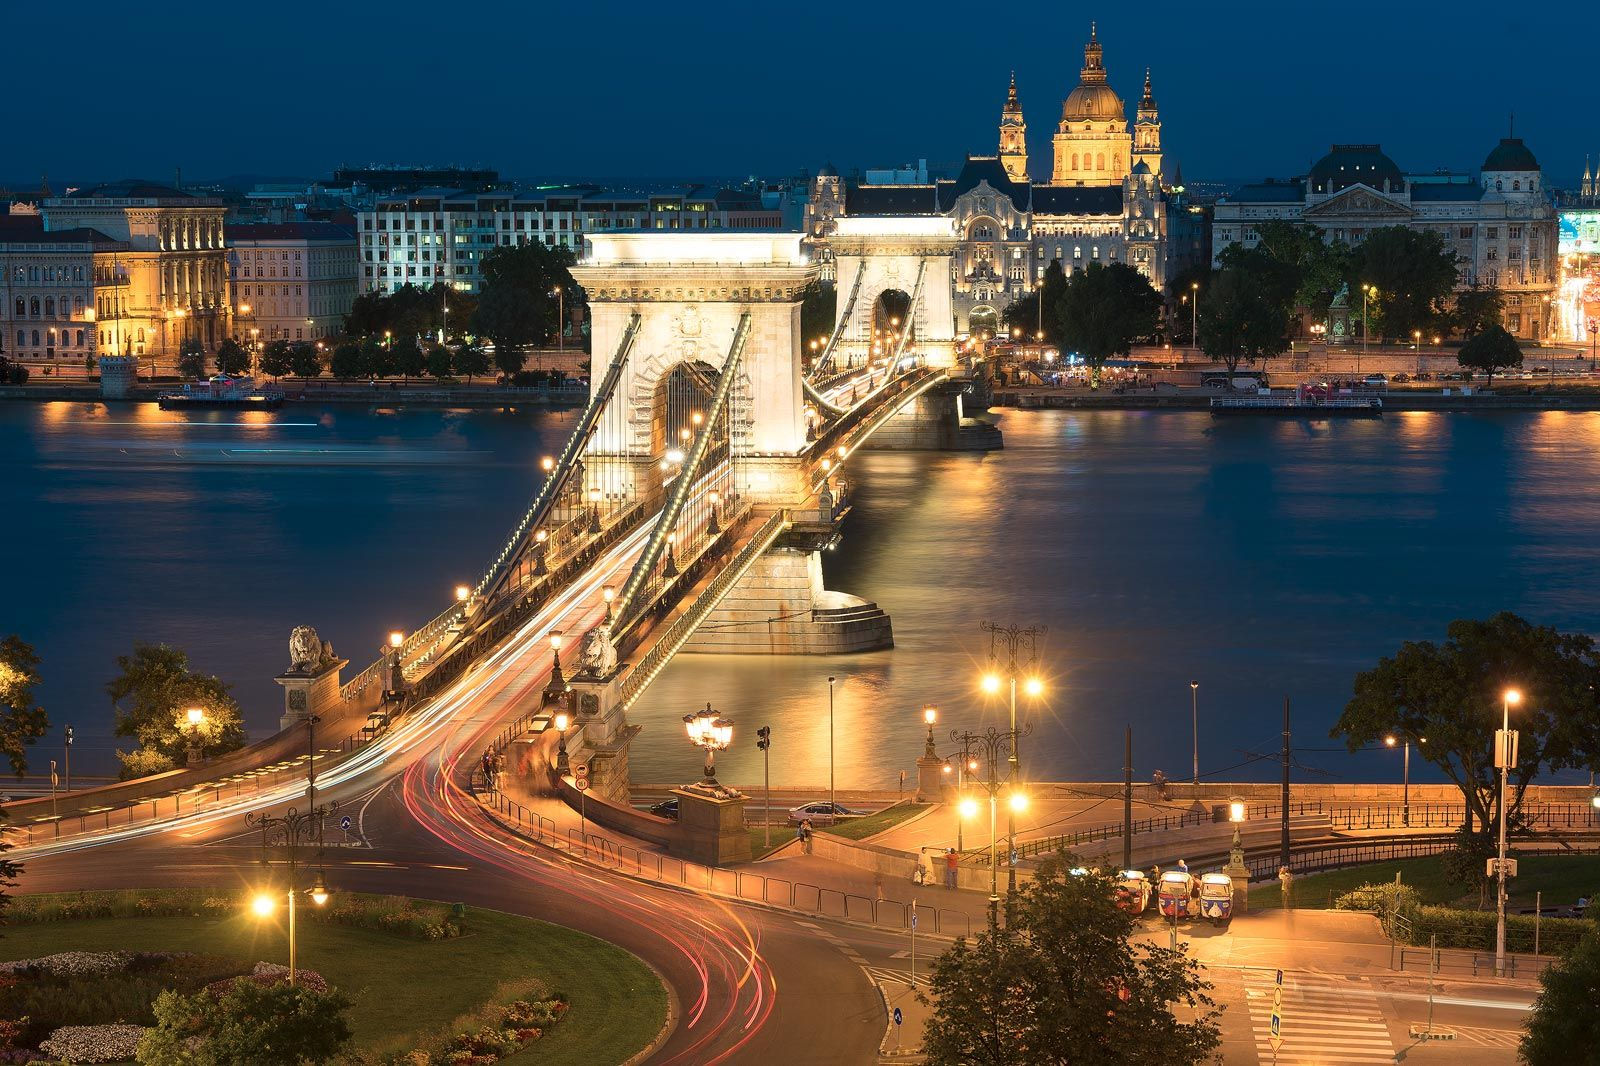 The Best Spots To Take Photos In Budapest